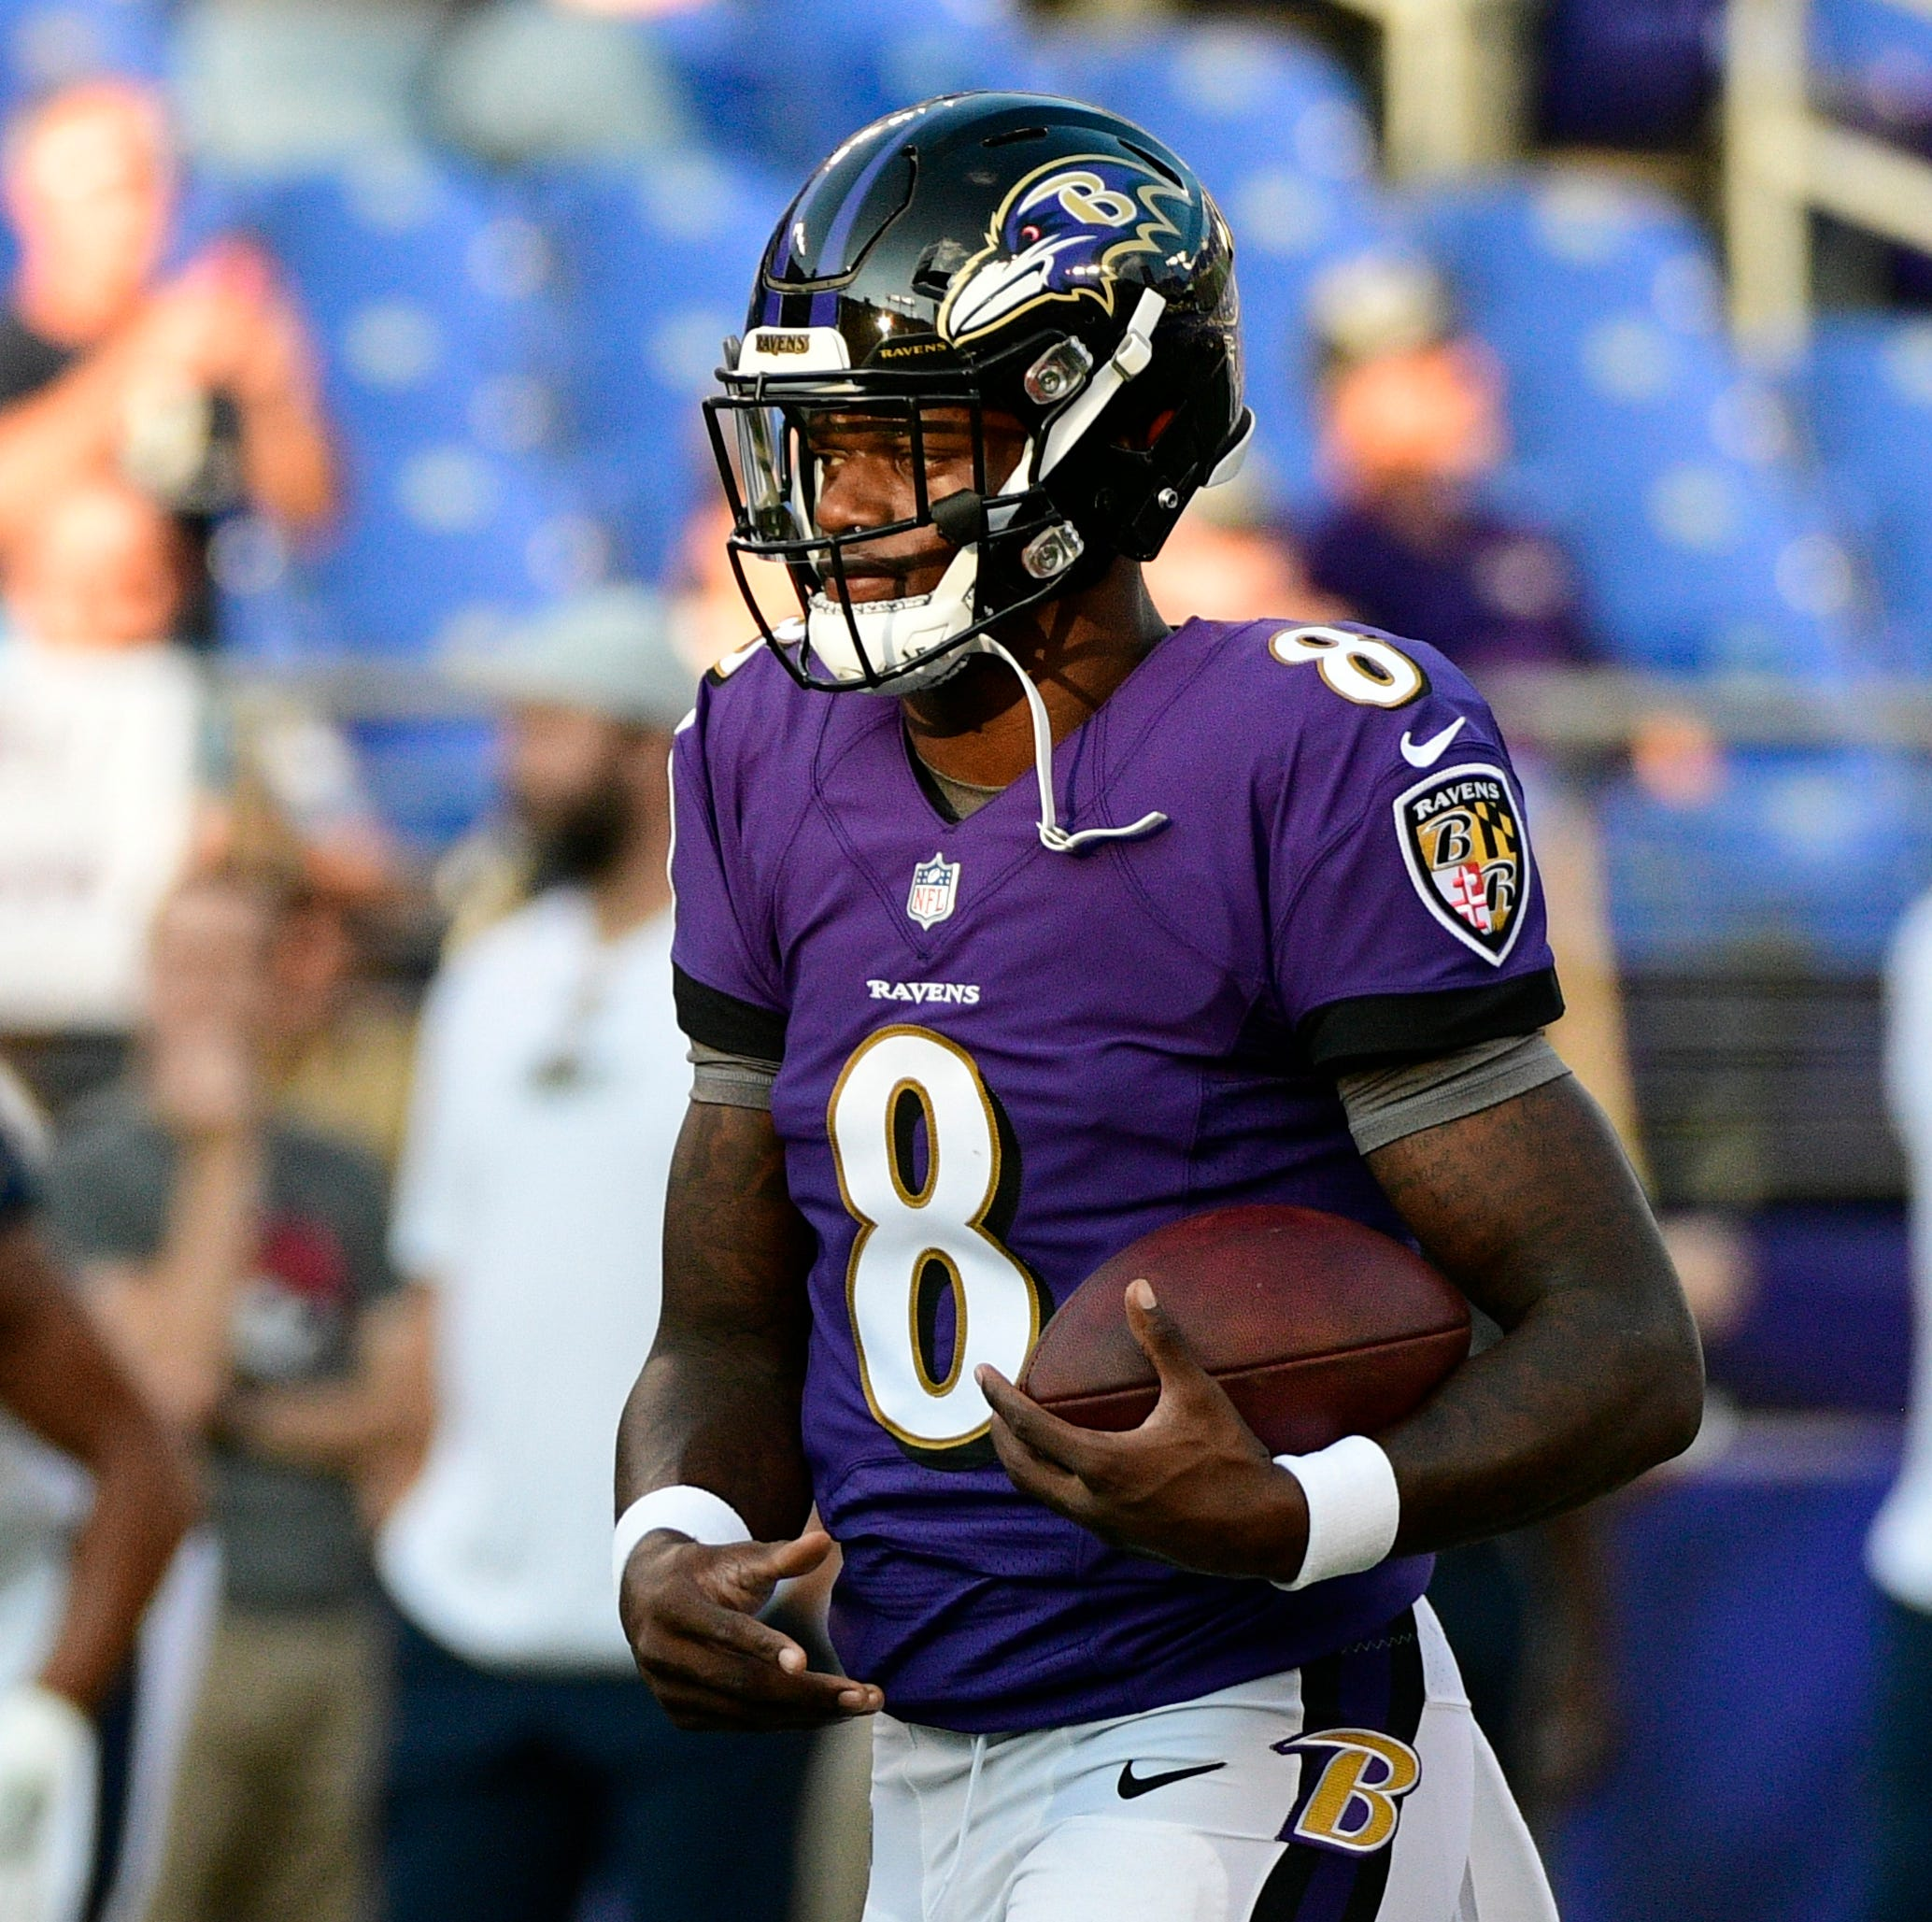 Lamar Jackson's talent on display after slow start in third preseason game